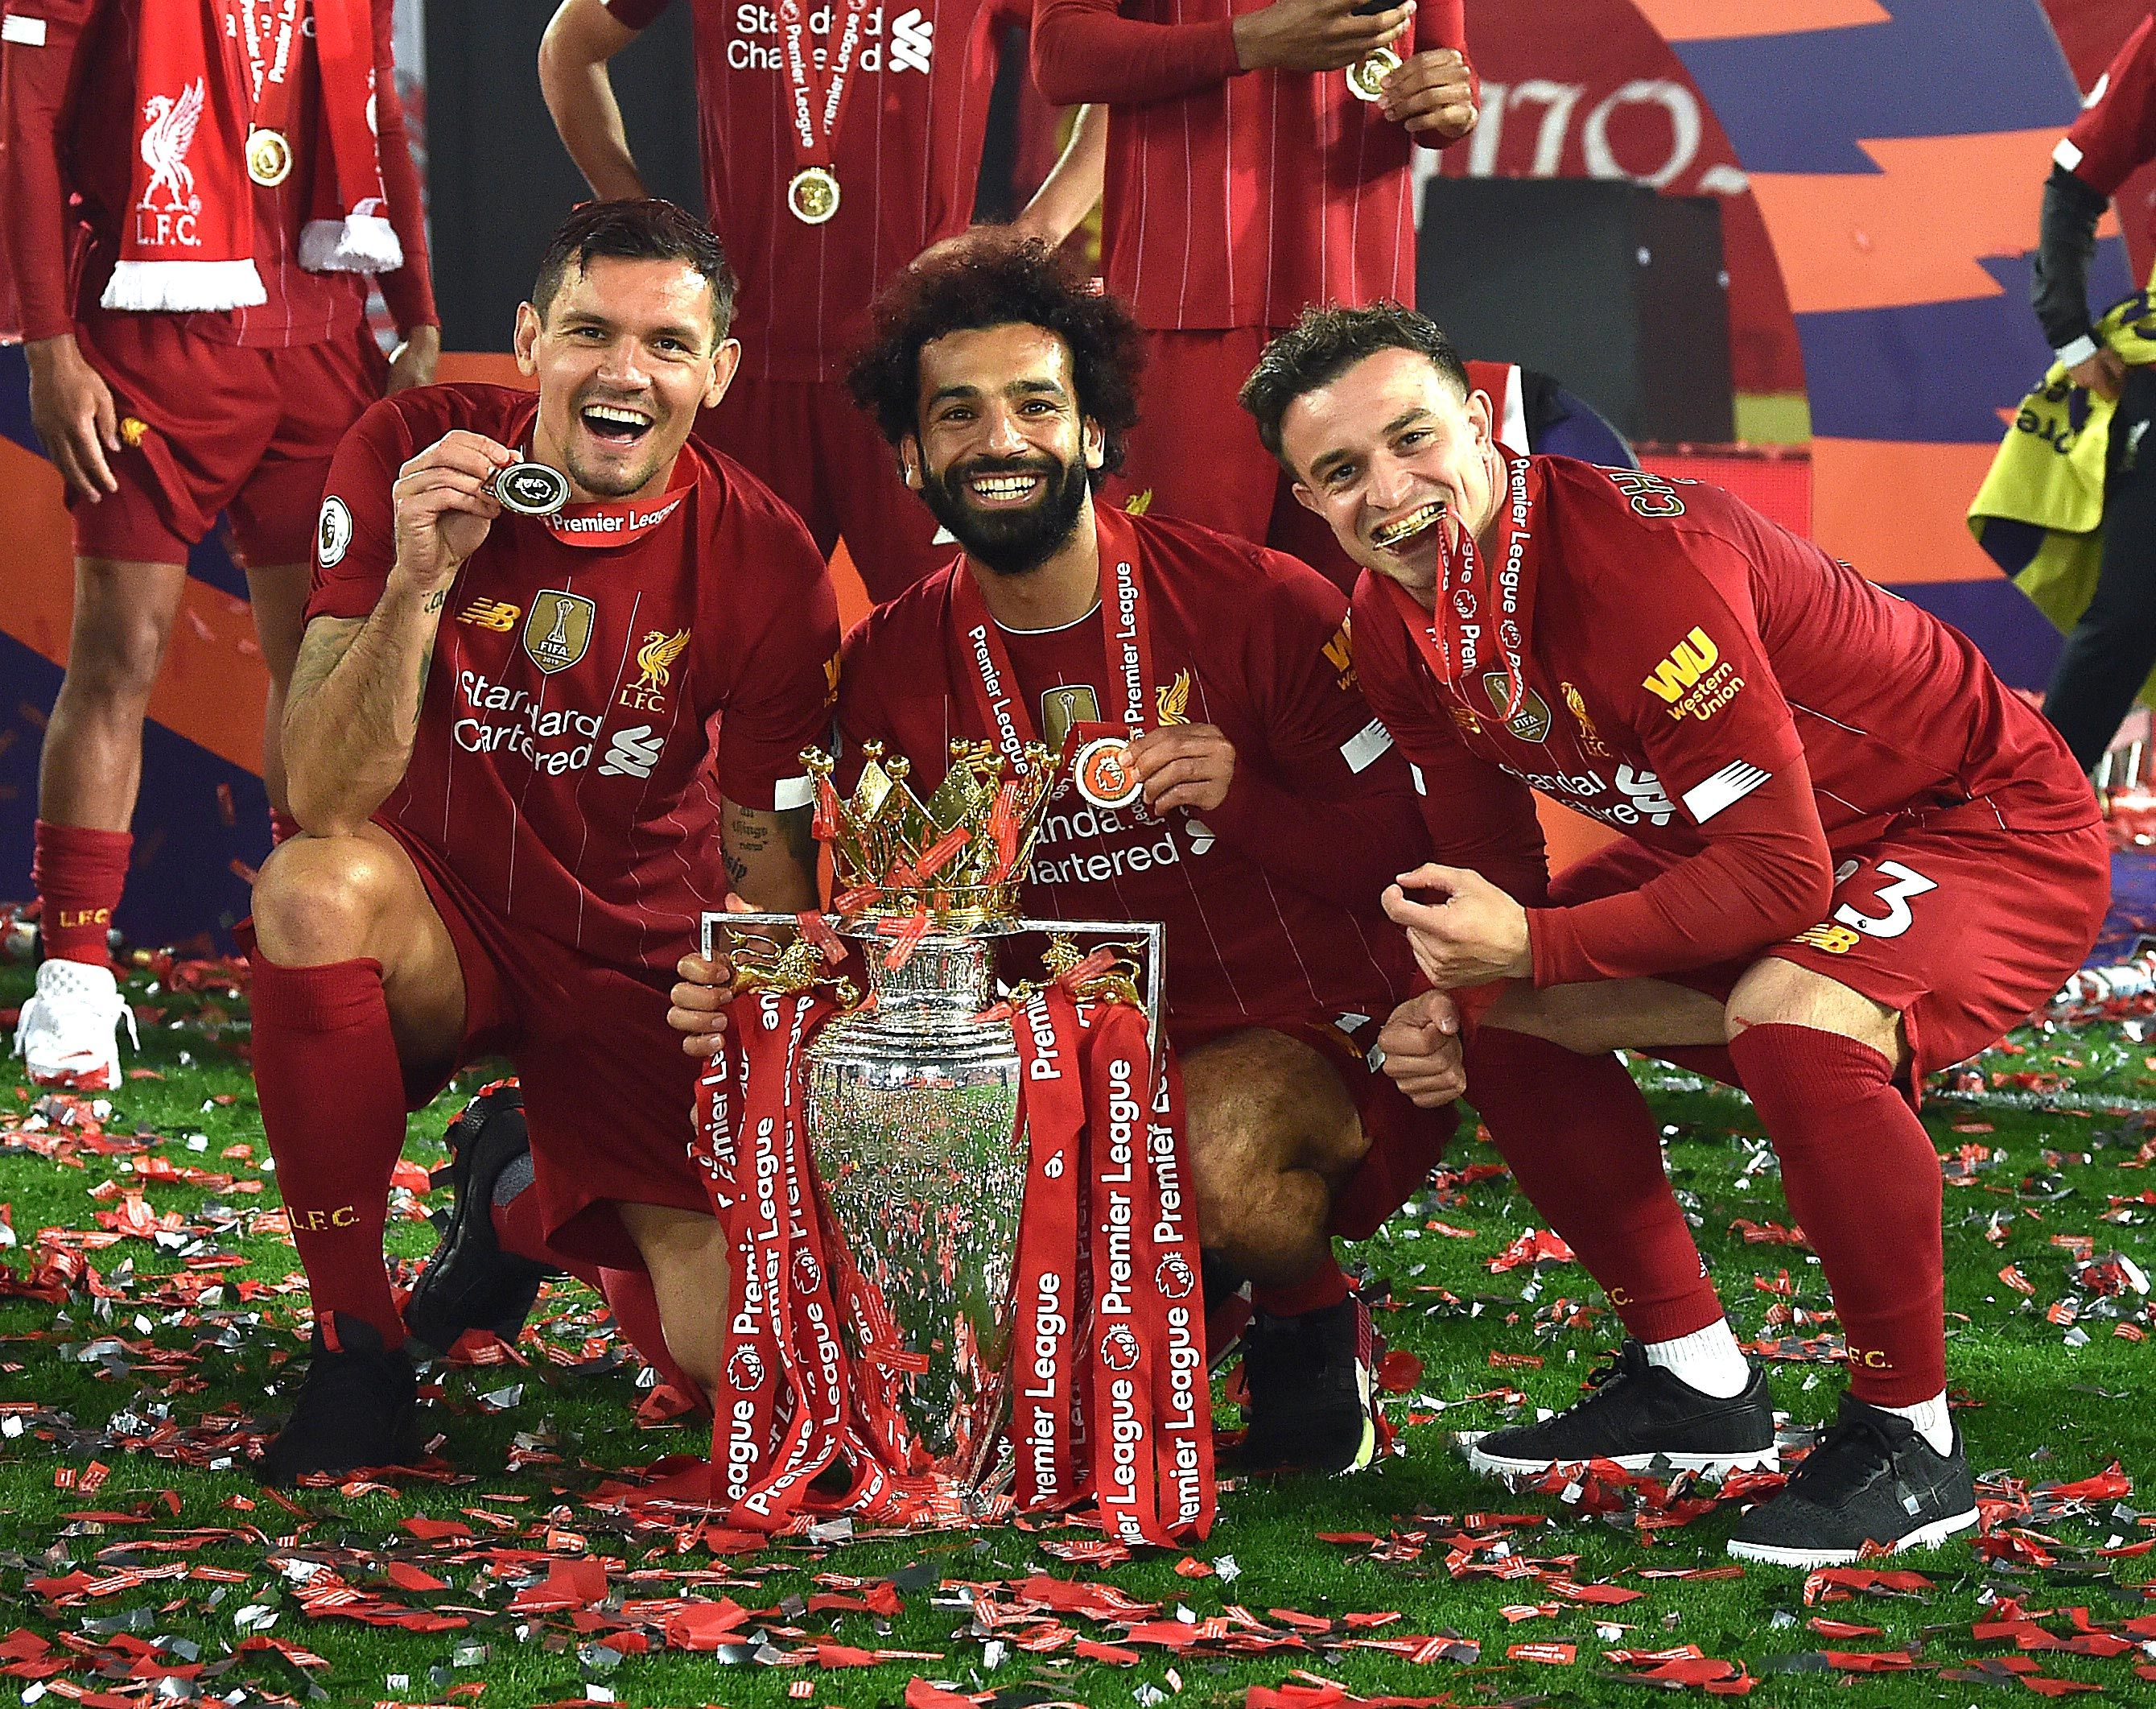 Premier League 2020/21 - how to watch and broadcast schedules